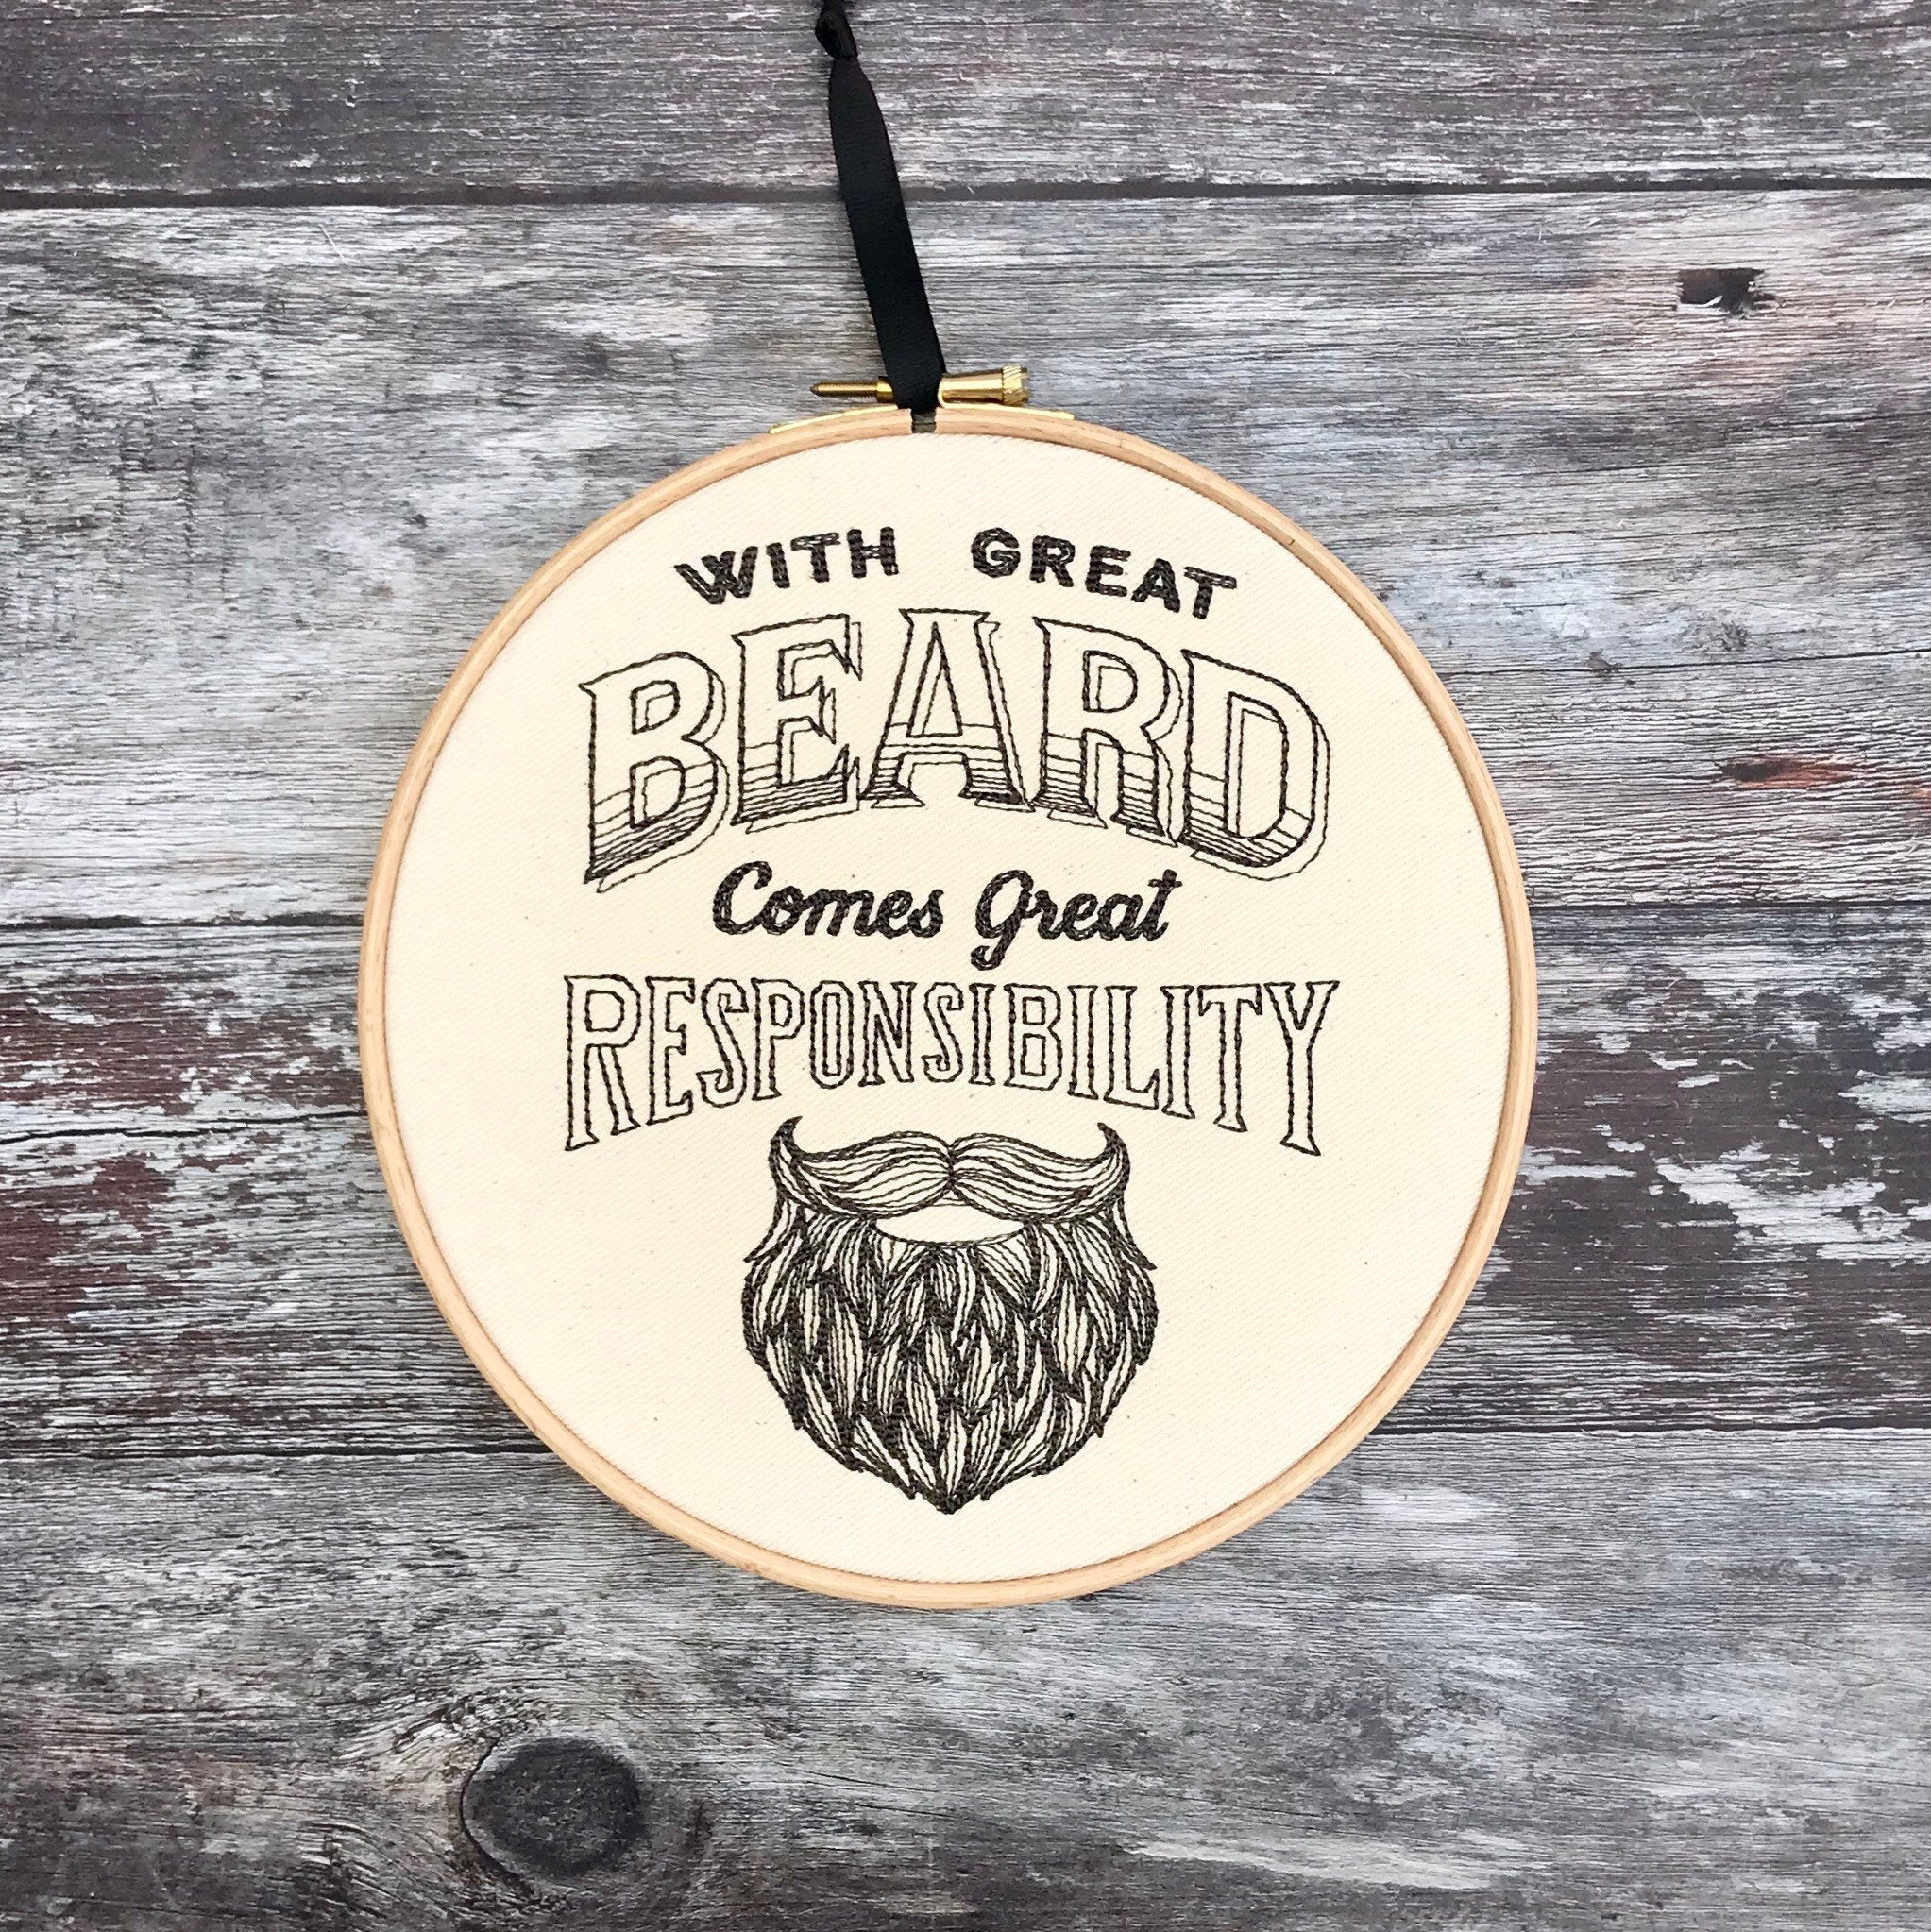 With great beard comes great responsibility, Embroidery hoop art